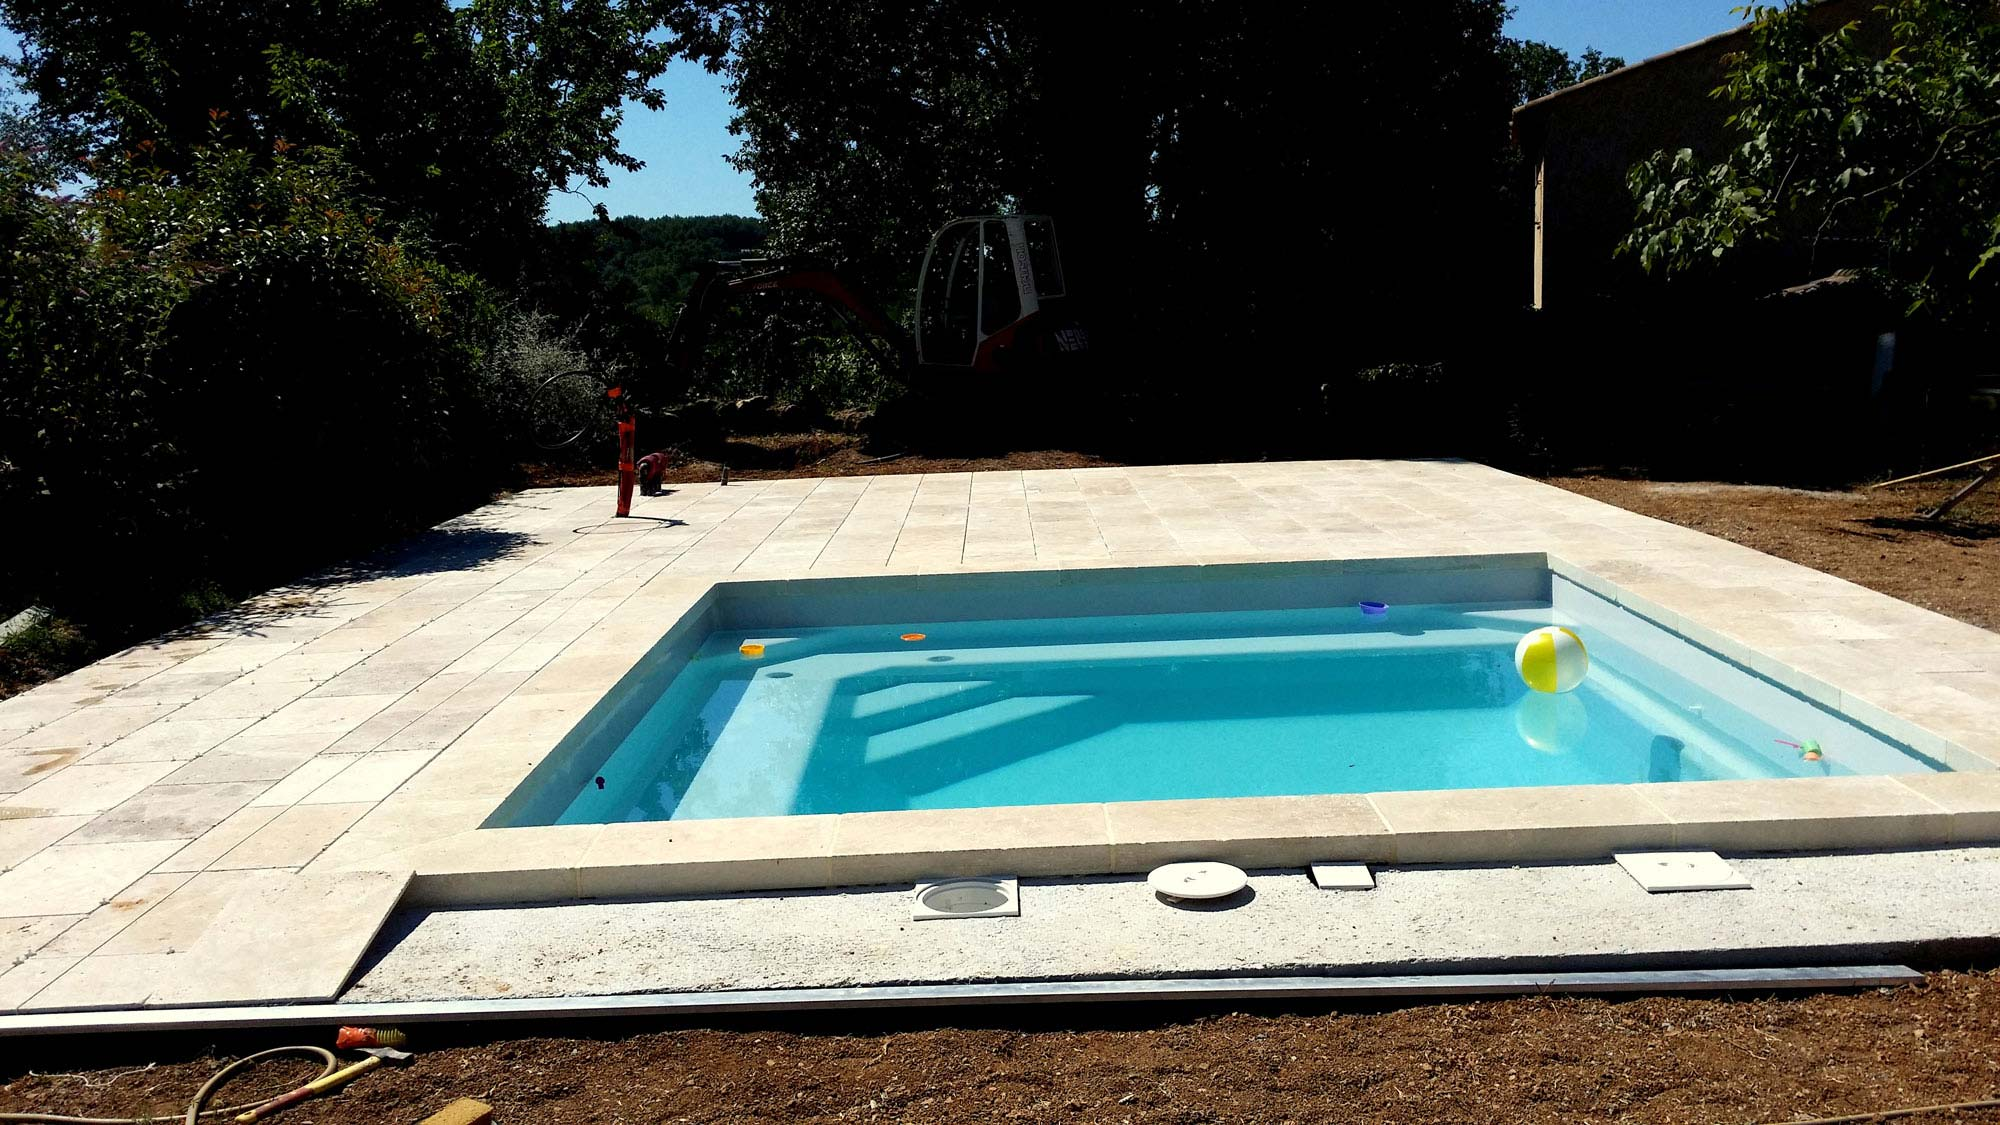 Duculty kit piscines construction de piscines dans le for Piscine var